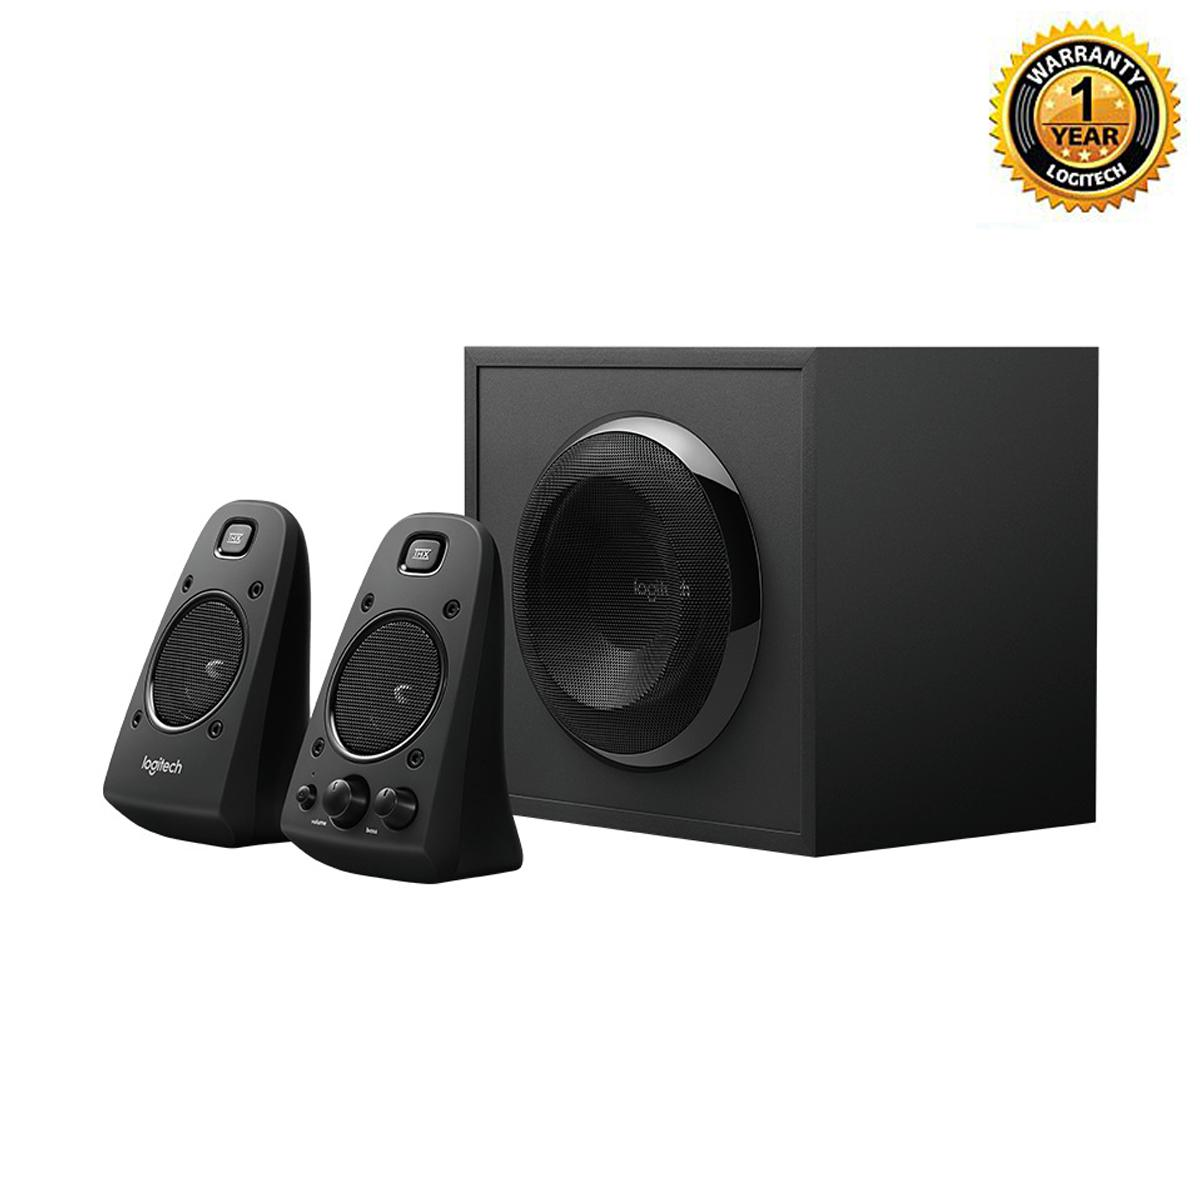 Buy Logitech Pc Soundbars At Best Prices Online In Bangladesh Z120 Usb Stereo Speaker For Laptop Notebook Z623 System With Sub Woofer Black